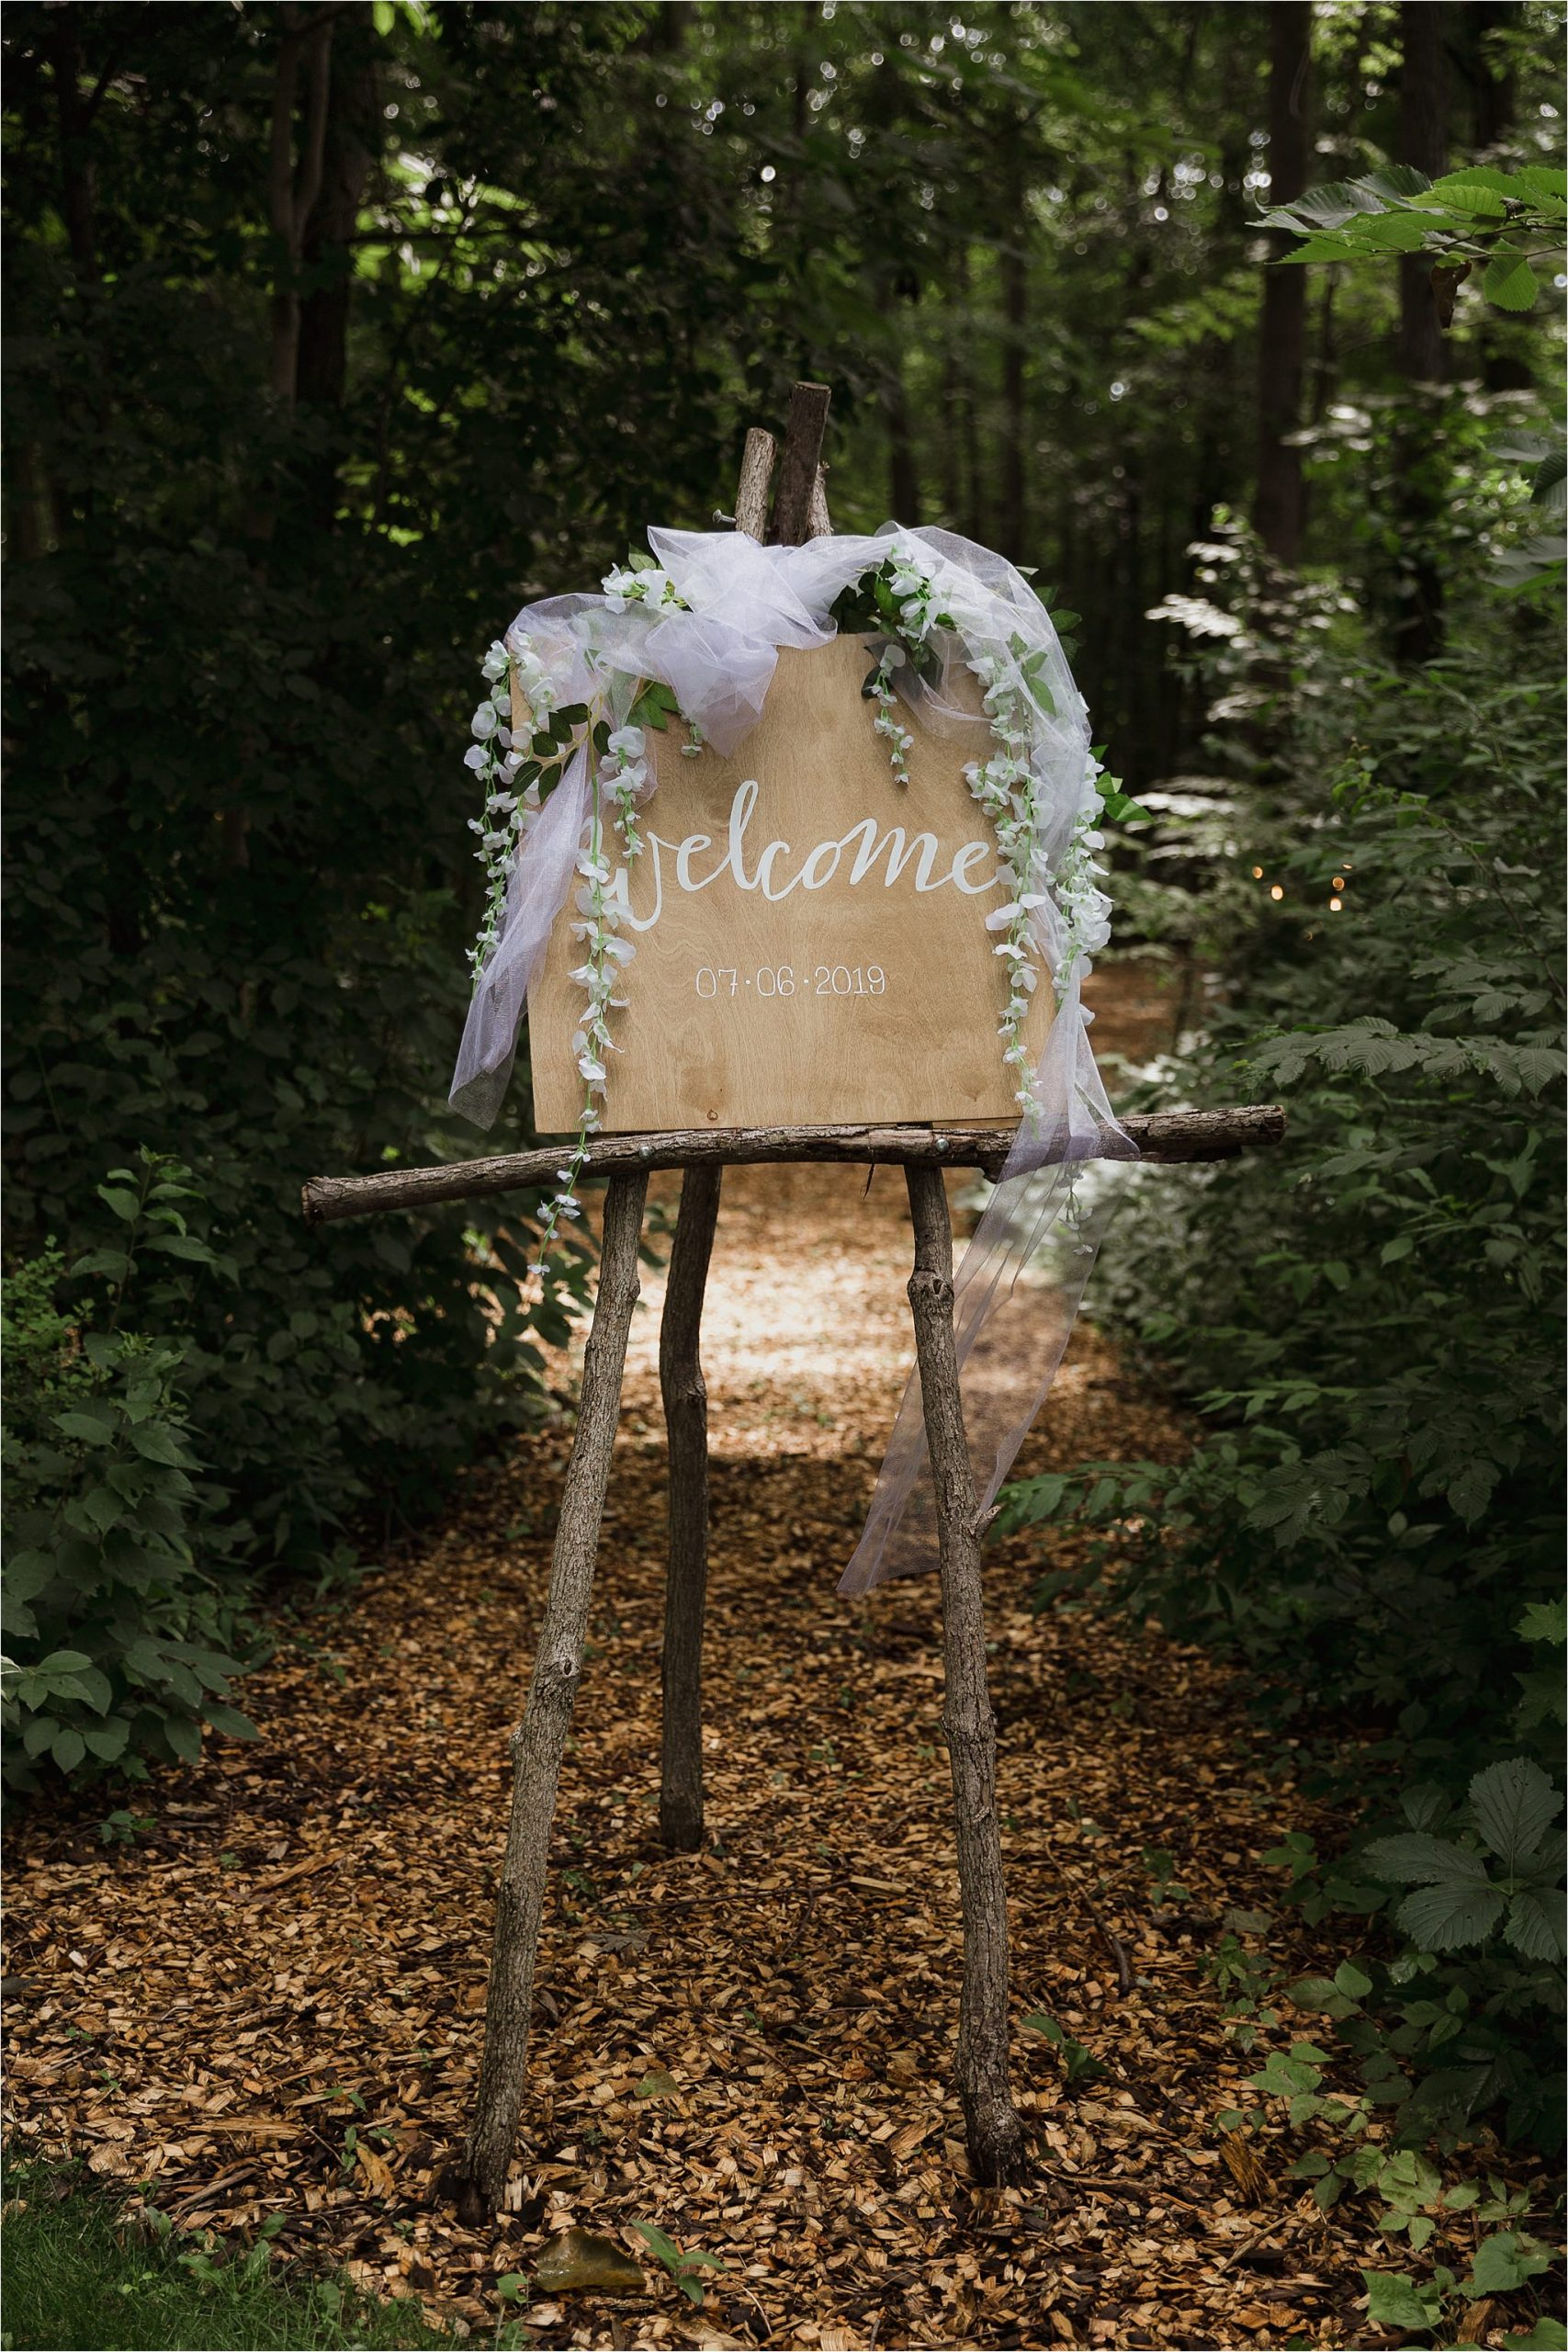 The Clearing wedding venue welcome ceremony sign green floral and tulle